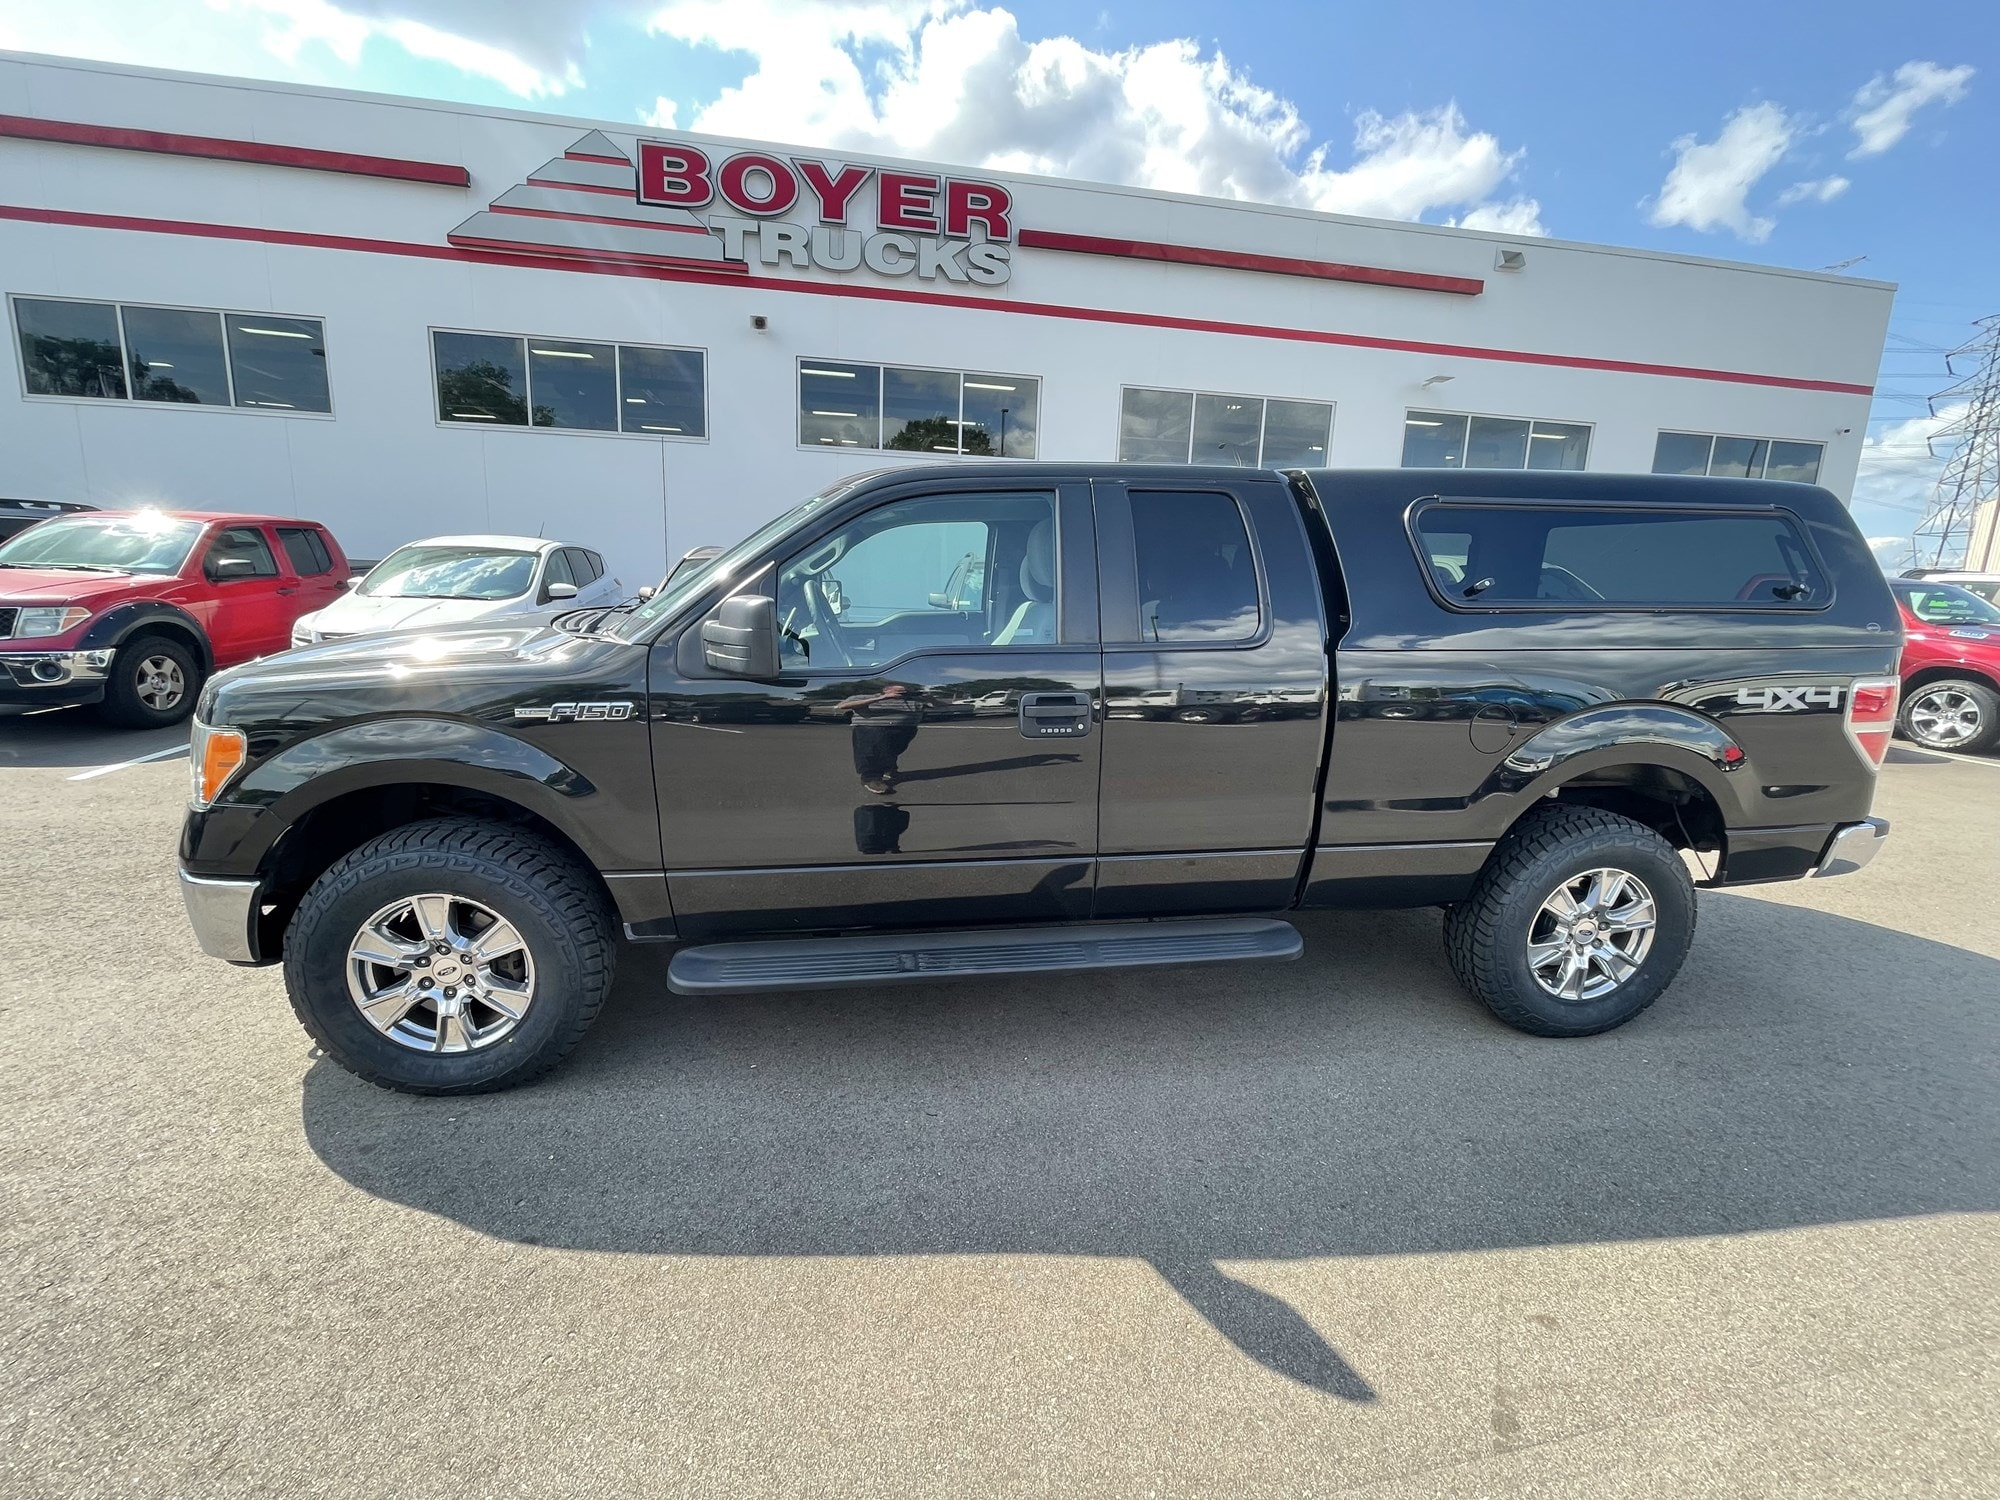 Used 2013 Ford F-150 XLT with VIN 1FTFX1EF9DKD29010 for sale in Minneapolis, Minnesota